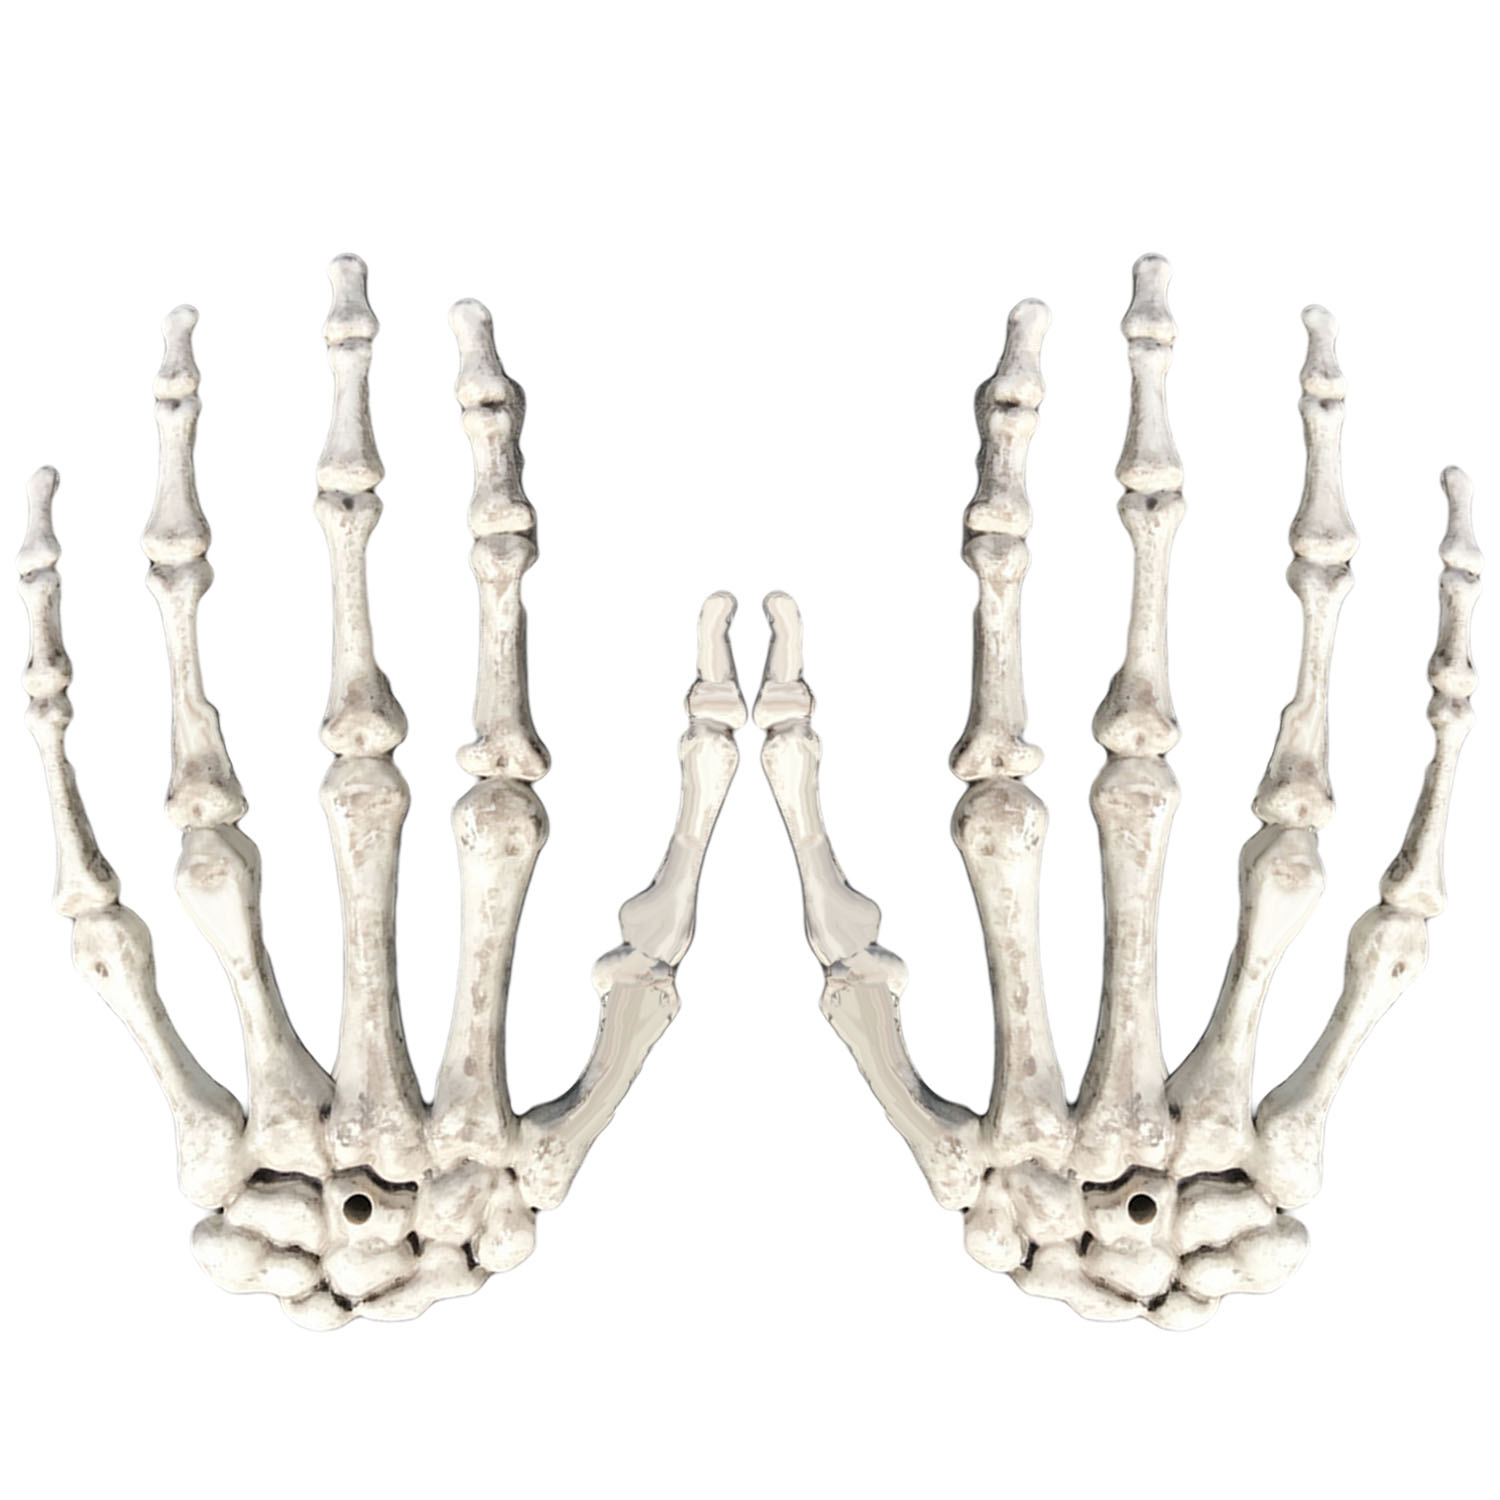 TAOS 1 Pair Plastic Scary Halloween Skeleton Hands Life Size Hands Haunted House Escape Horror Props for Halloween Decoration